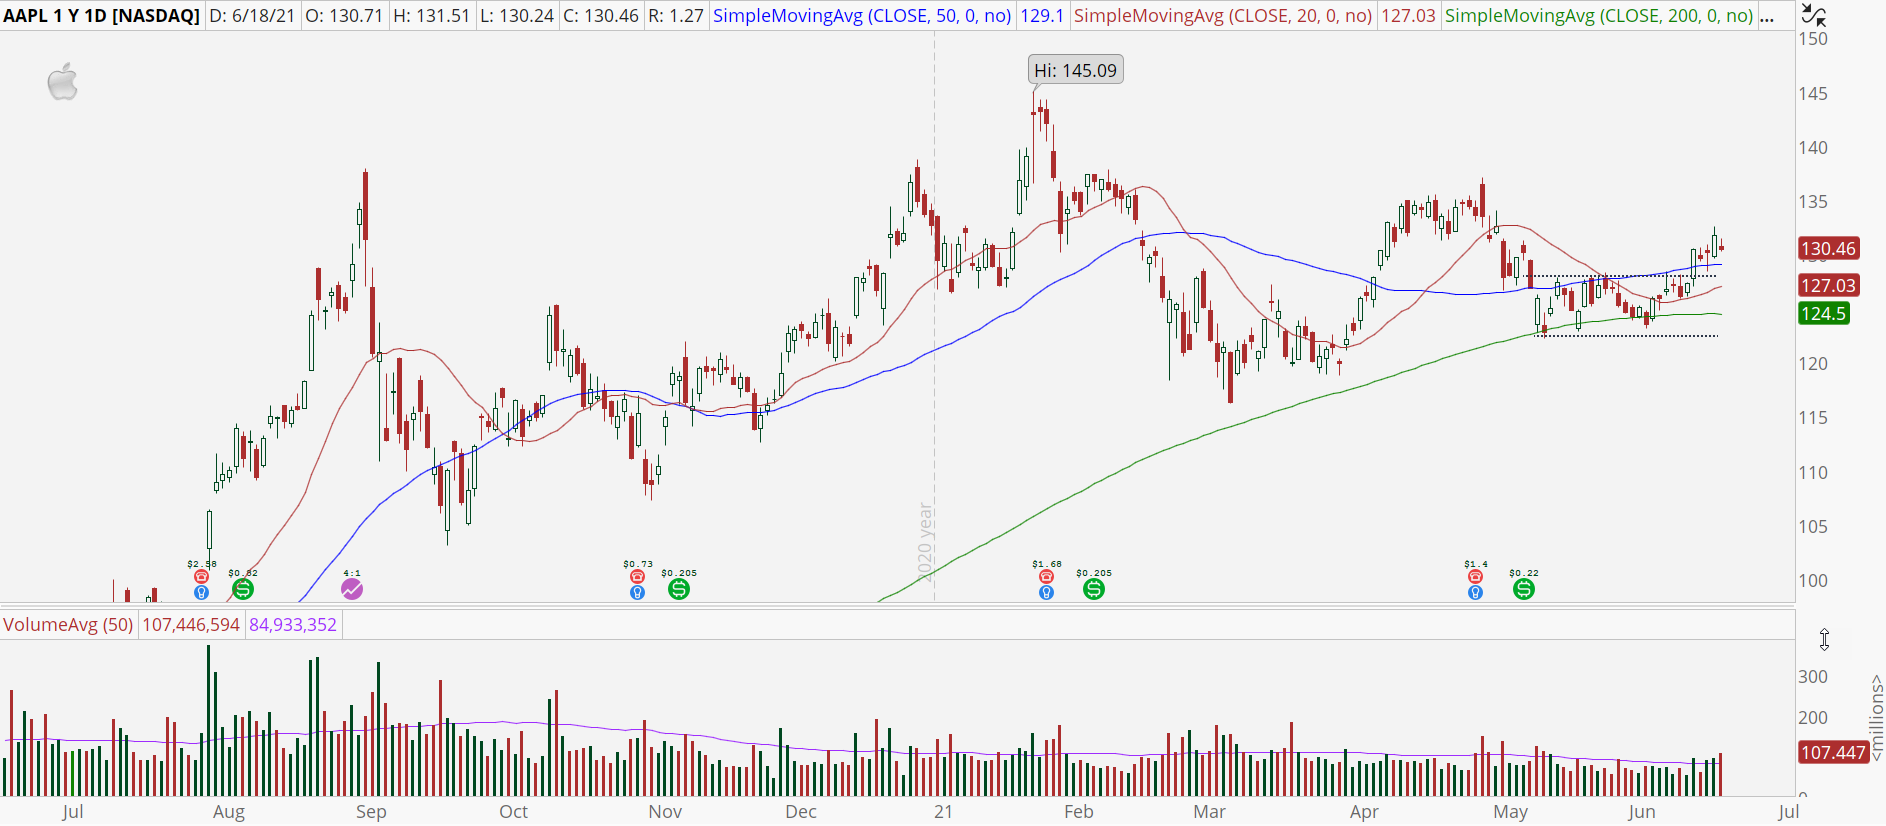 Apple (AAPL) stock chart with upside breakout